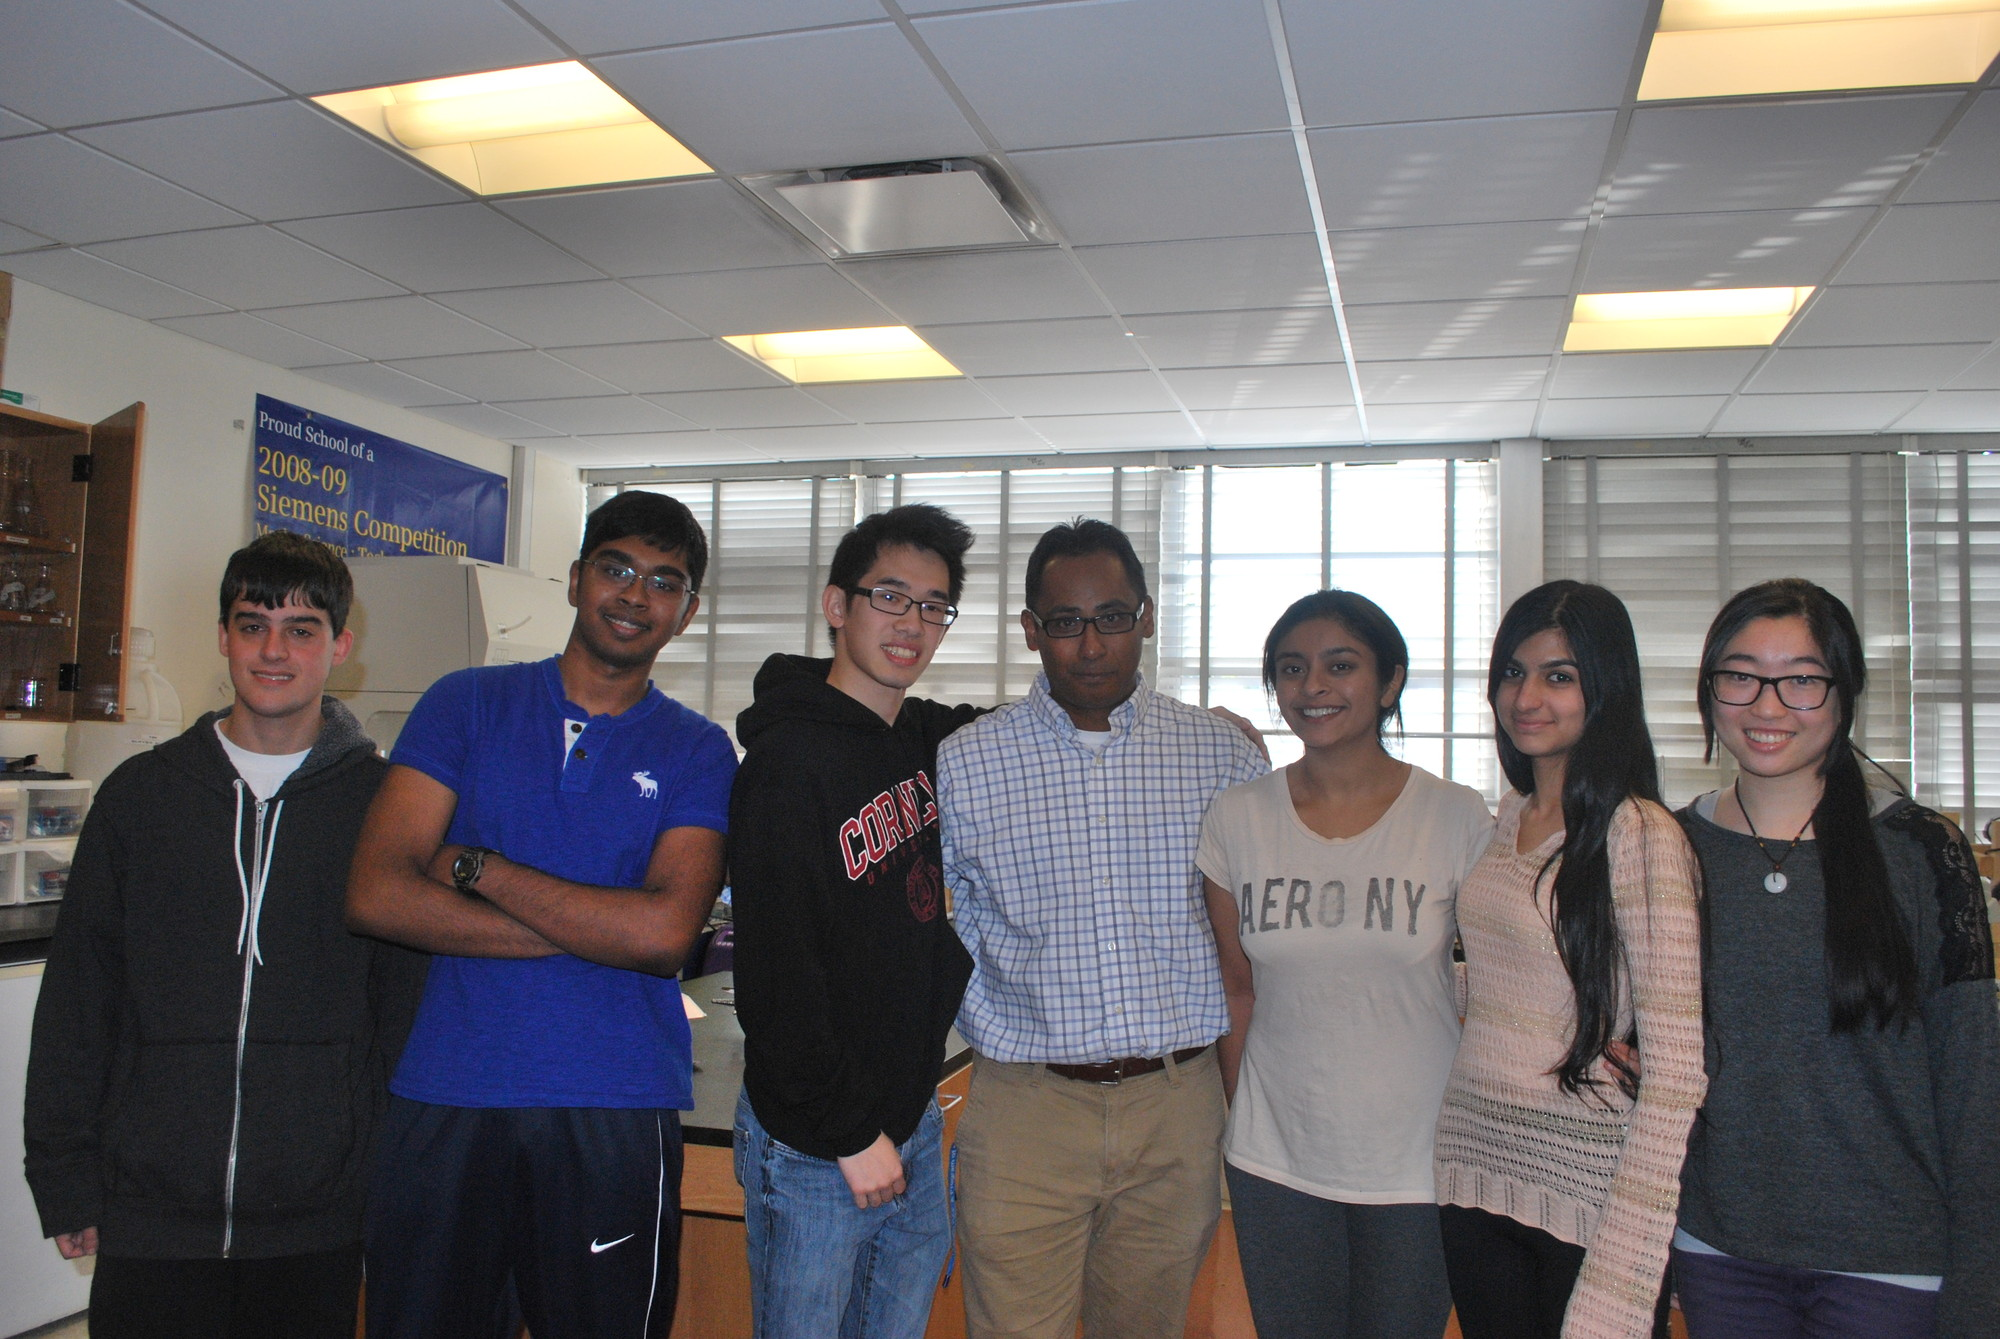 Hewlett High School's research program has generated a string of successes in prestigious science competitions, including two consecutive grand prize-winning teams. From left, the team of regional finalists, Michael Green, Ayman Haider and Stephen Ng; teacher Dr. Terence Bissoondial; and the team that won the grand prize, Priyanka Wadgaonkar, Zainab Mahmood and JiaWen Pei.